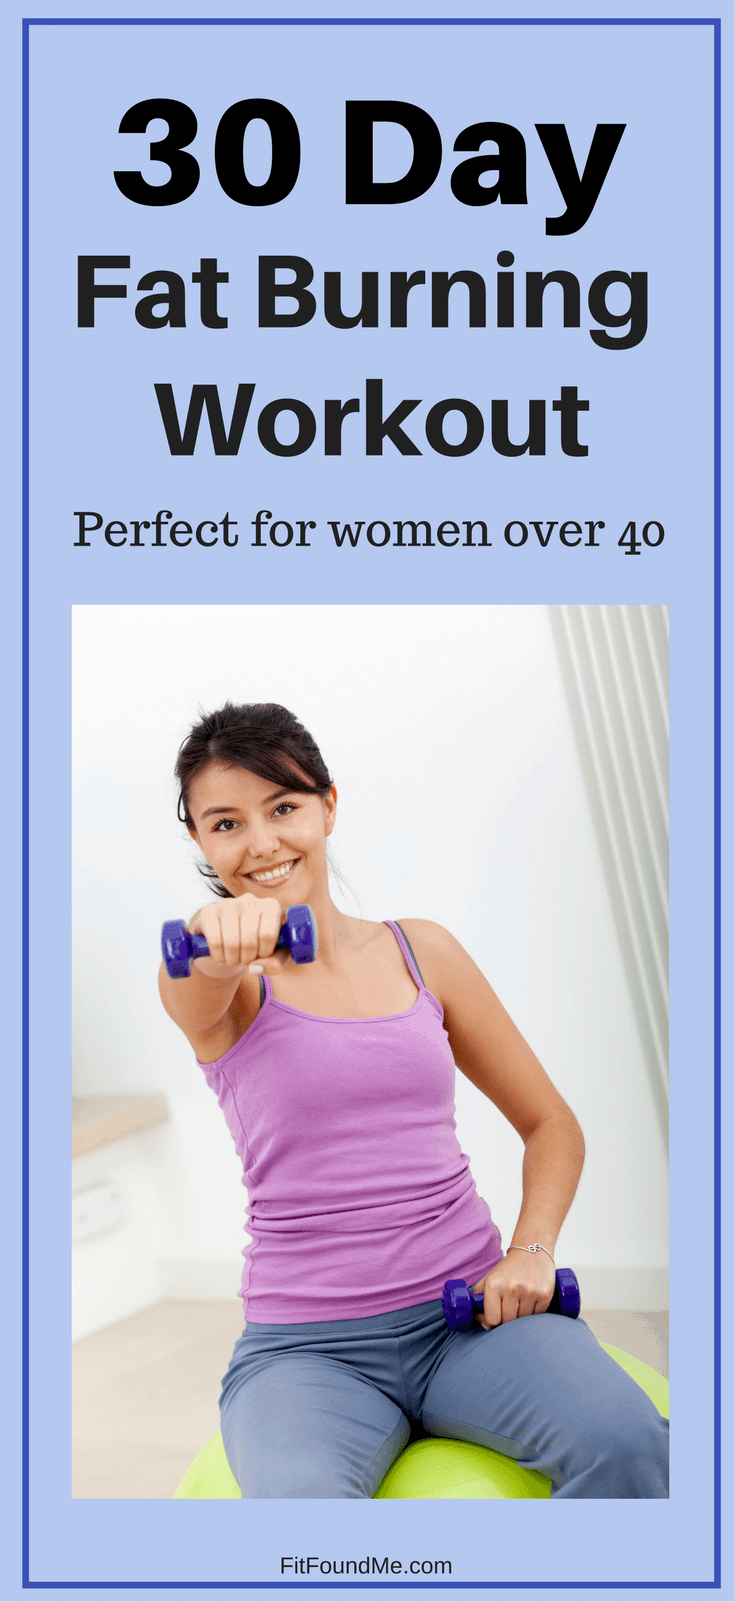 30 day fat burning workout